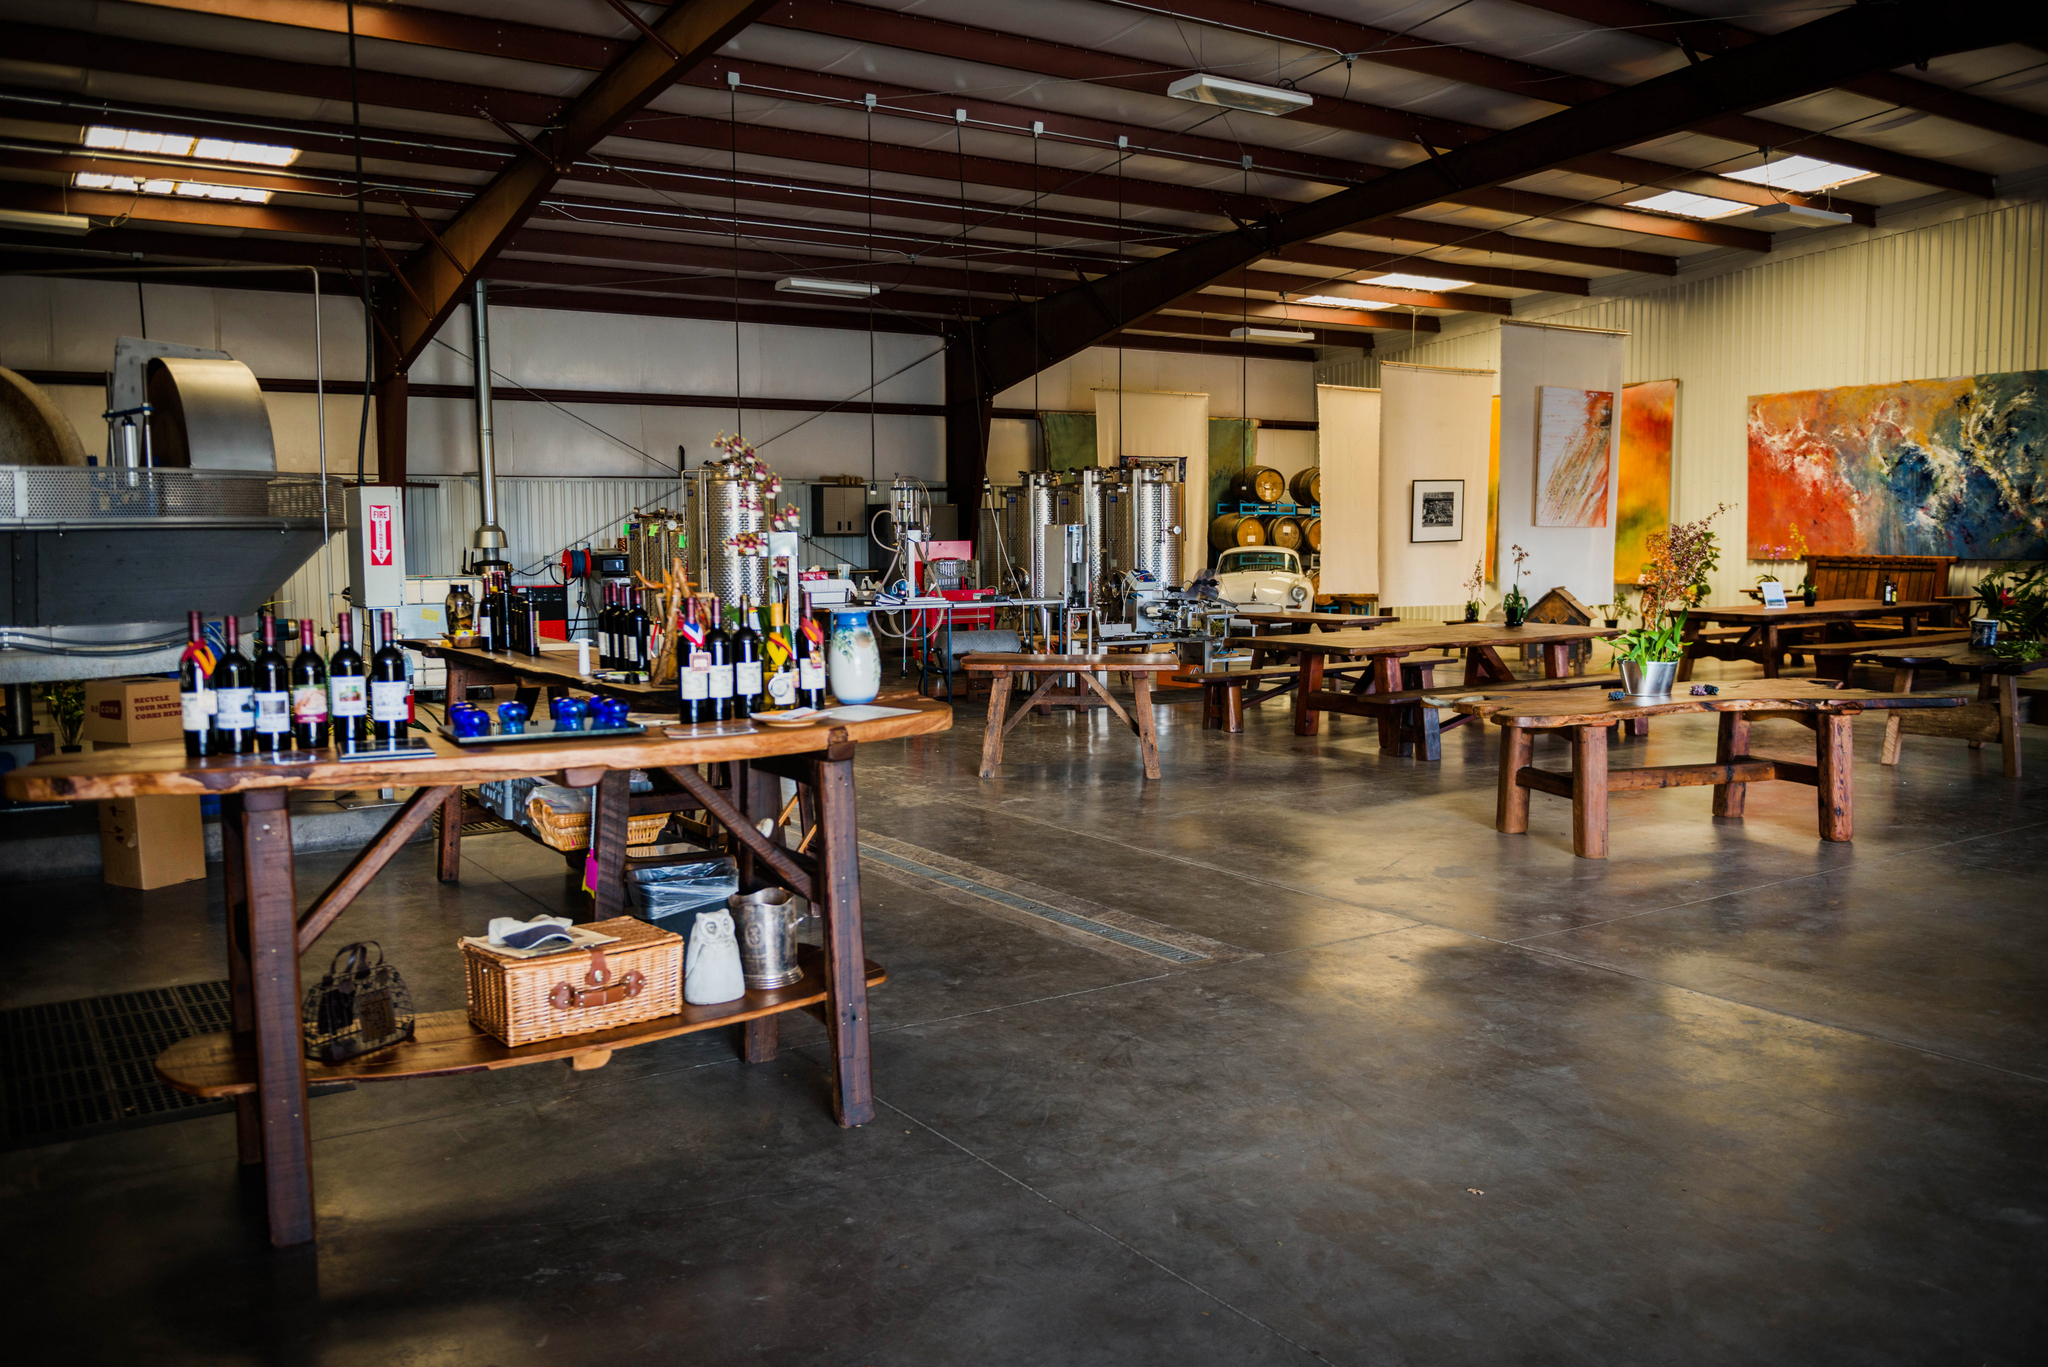 THE TASTING ROOM, OLIVE MILL, AND ART COLLECTION